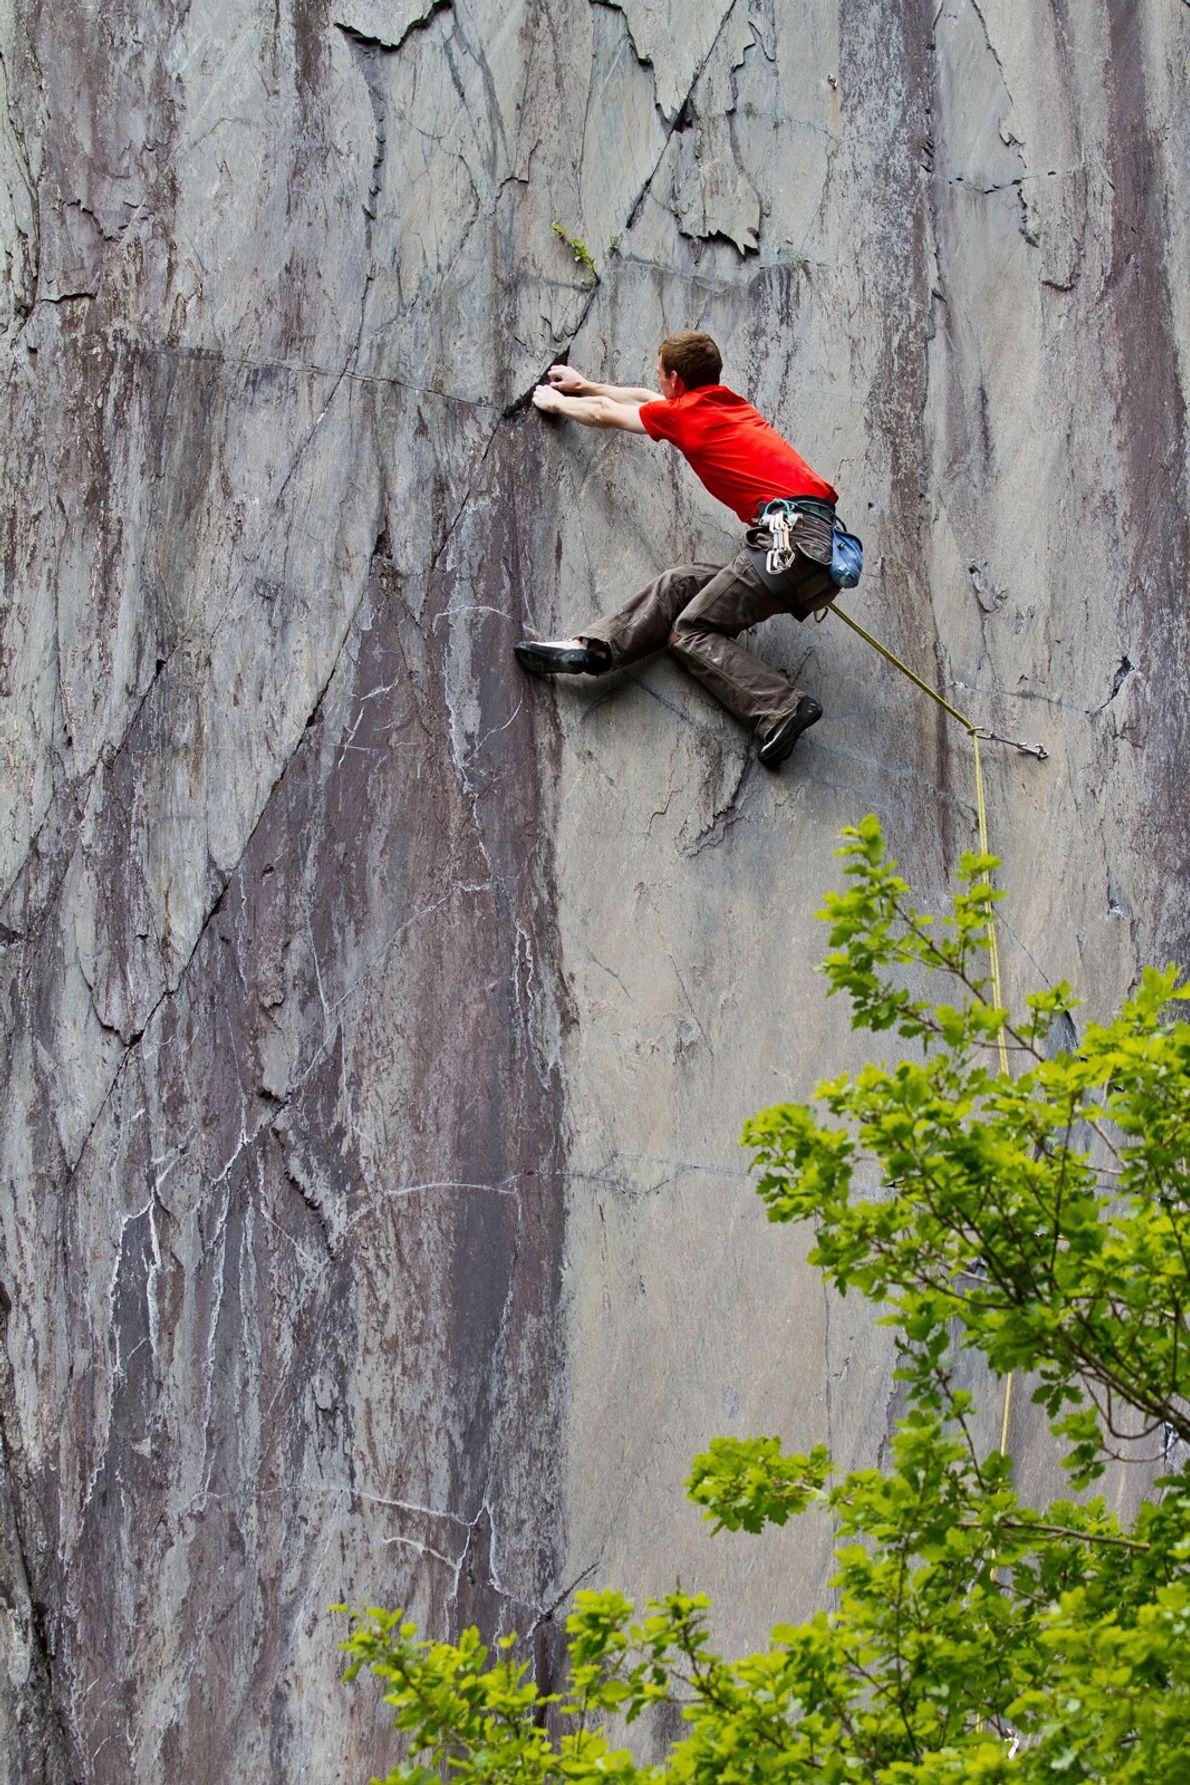 Slate in North Wales provided the training ground for some of the UK's most pioneering climbers, ...